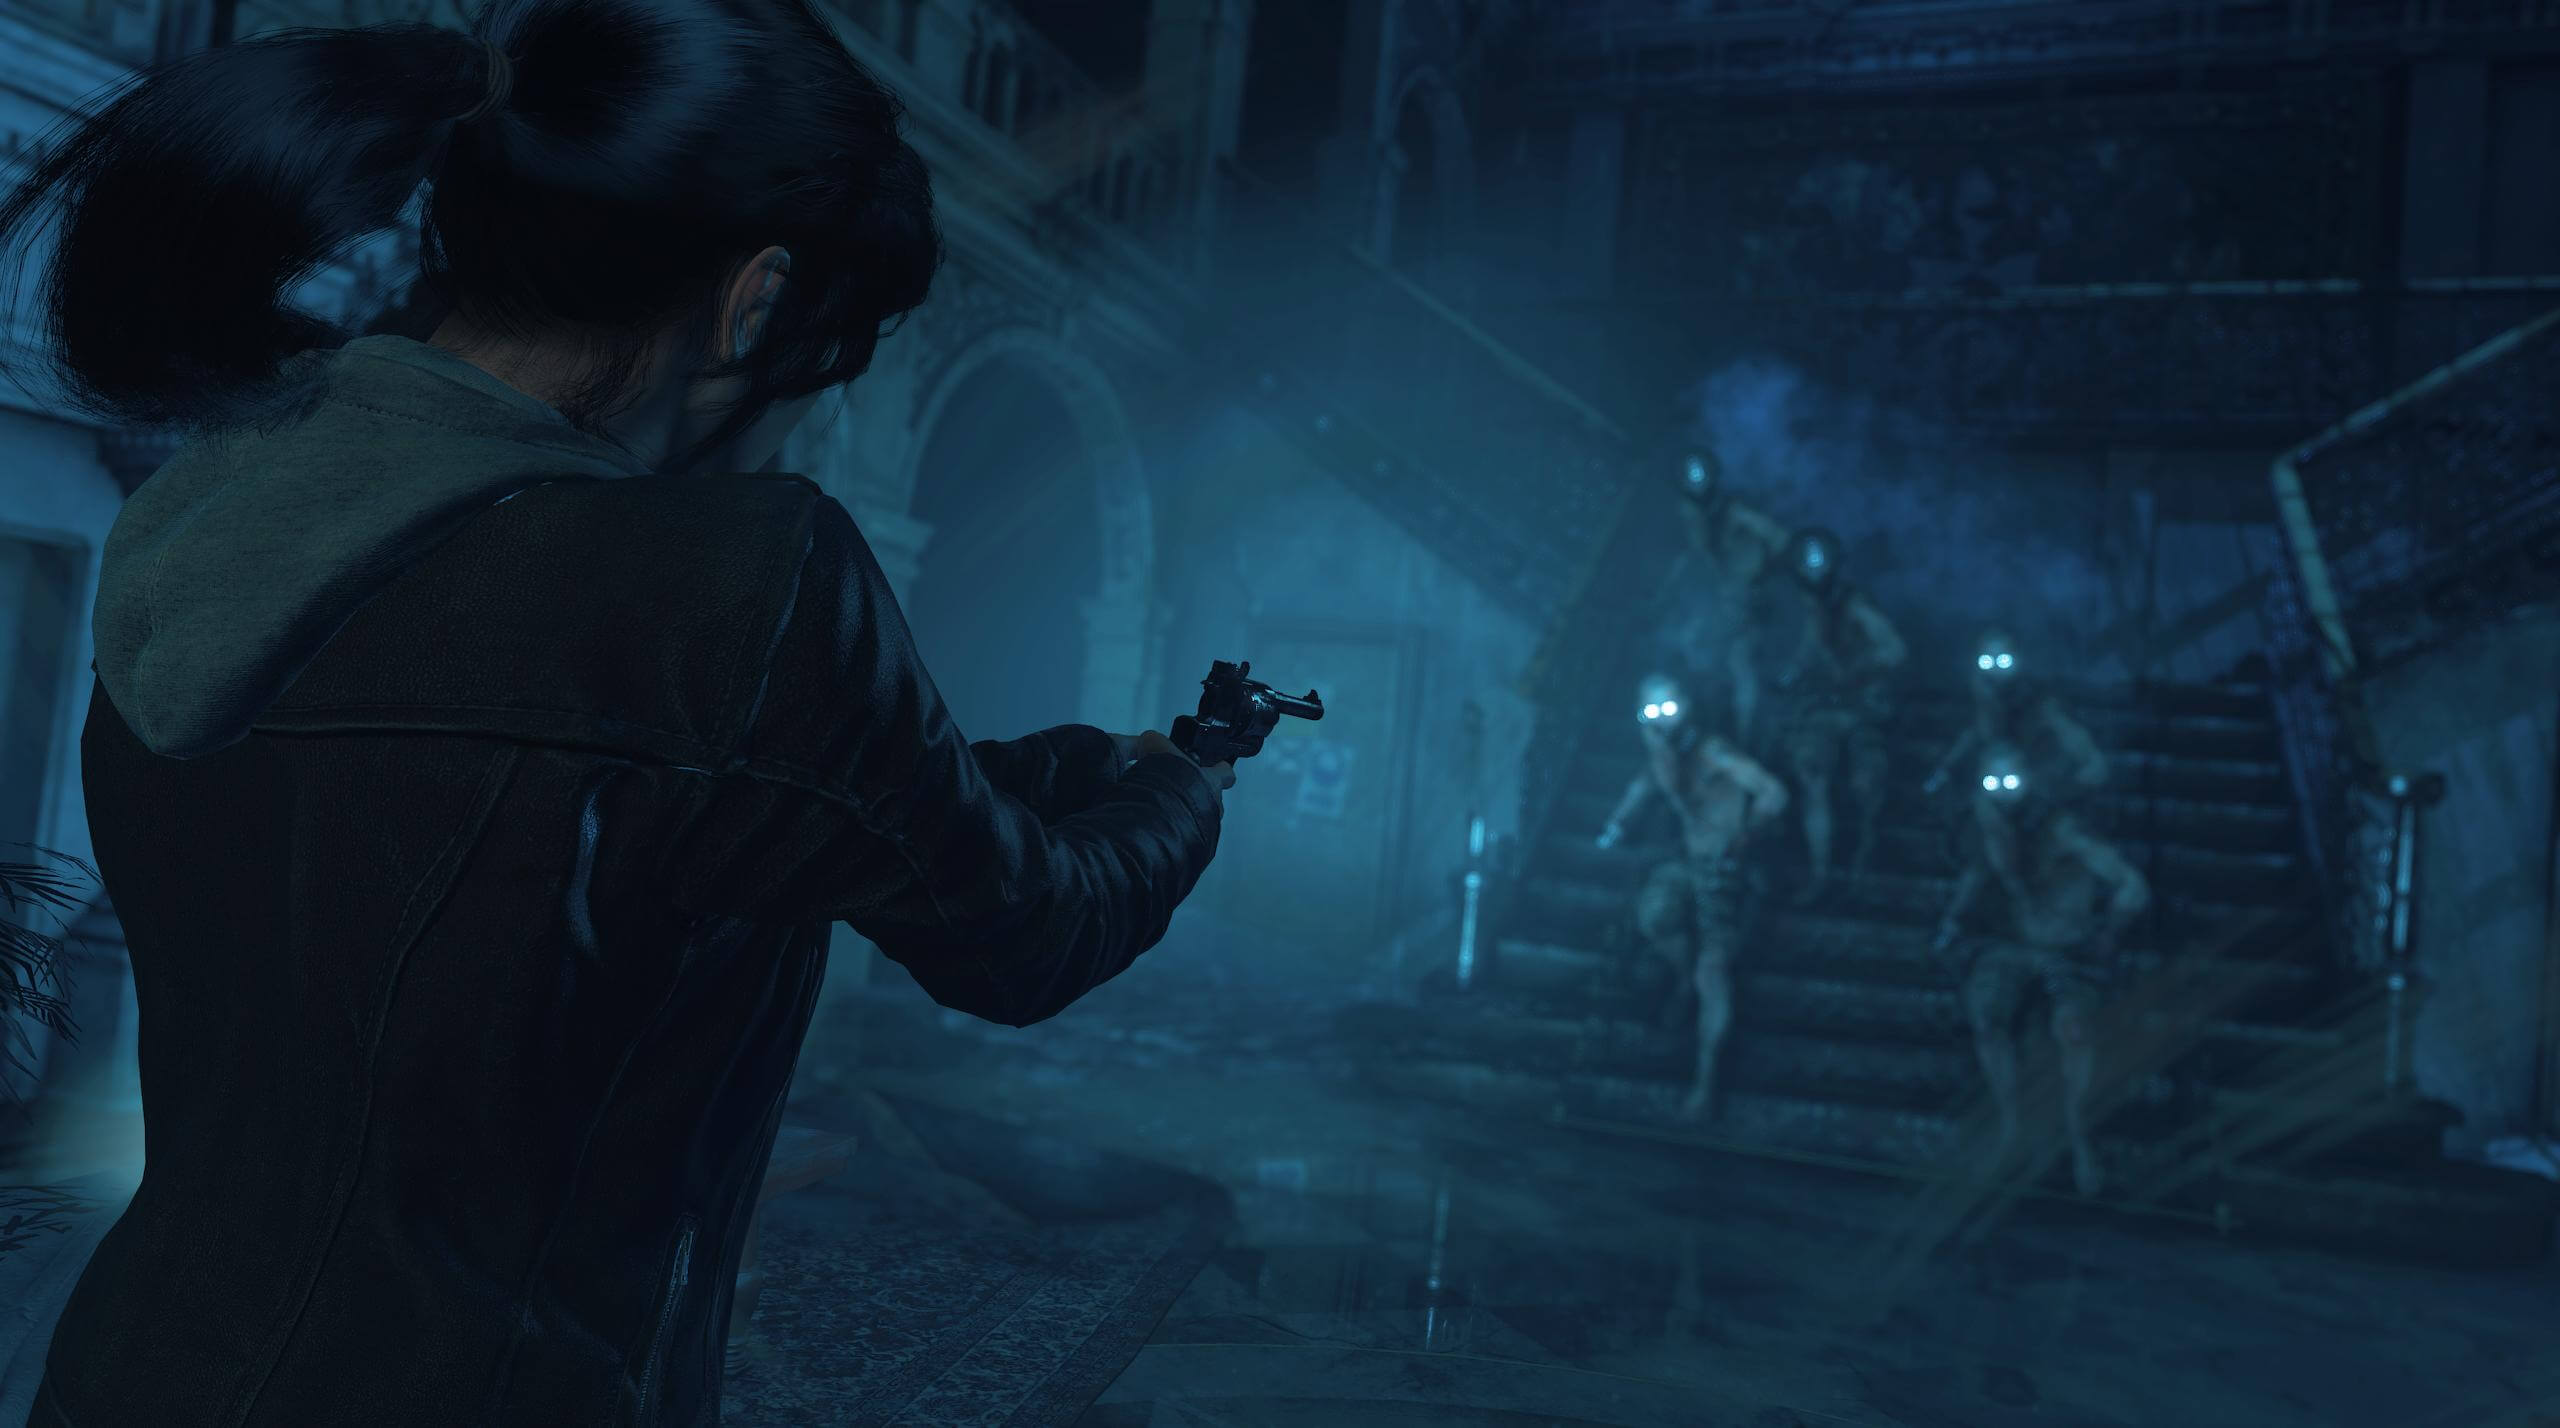 Hands On With Rise Of The Tomb Raiders Brilliant New PS4 Features LarasNightmare 02 tif jpgcopy